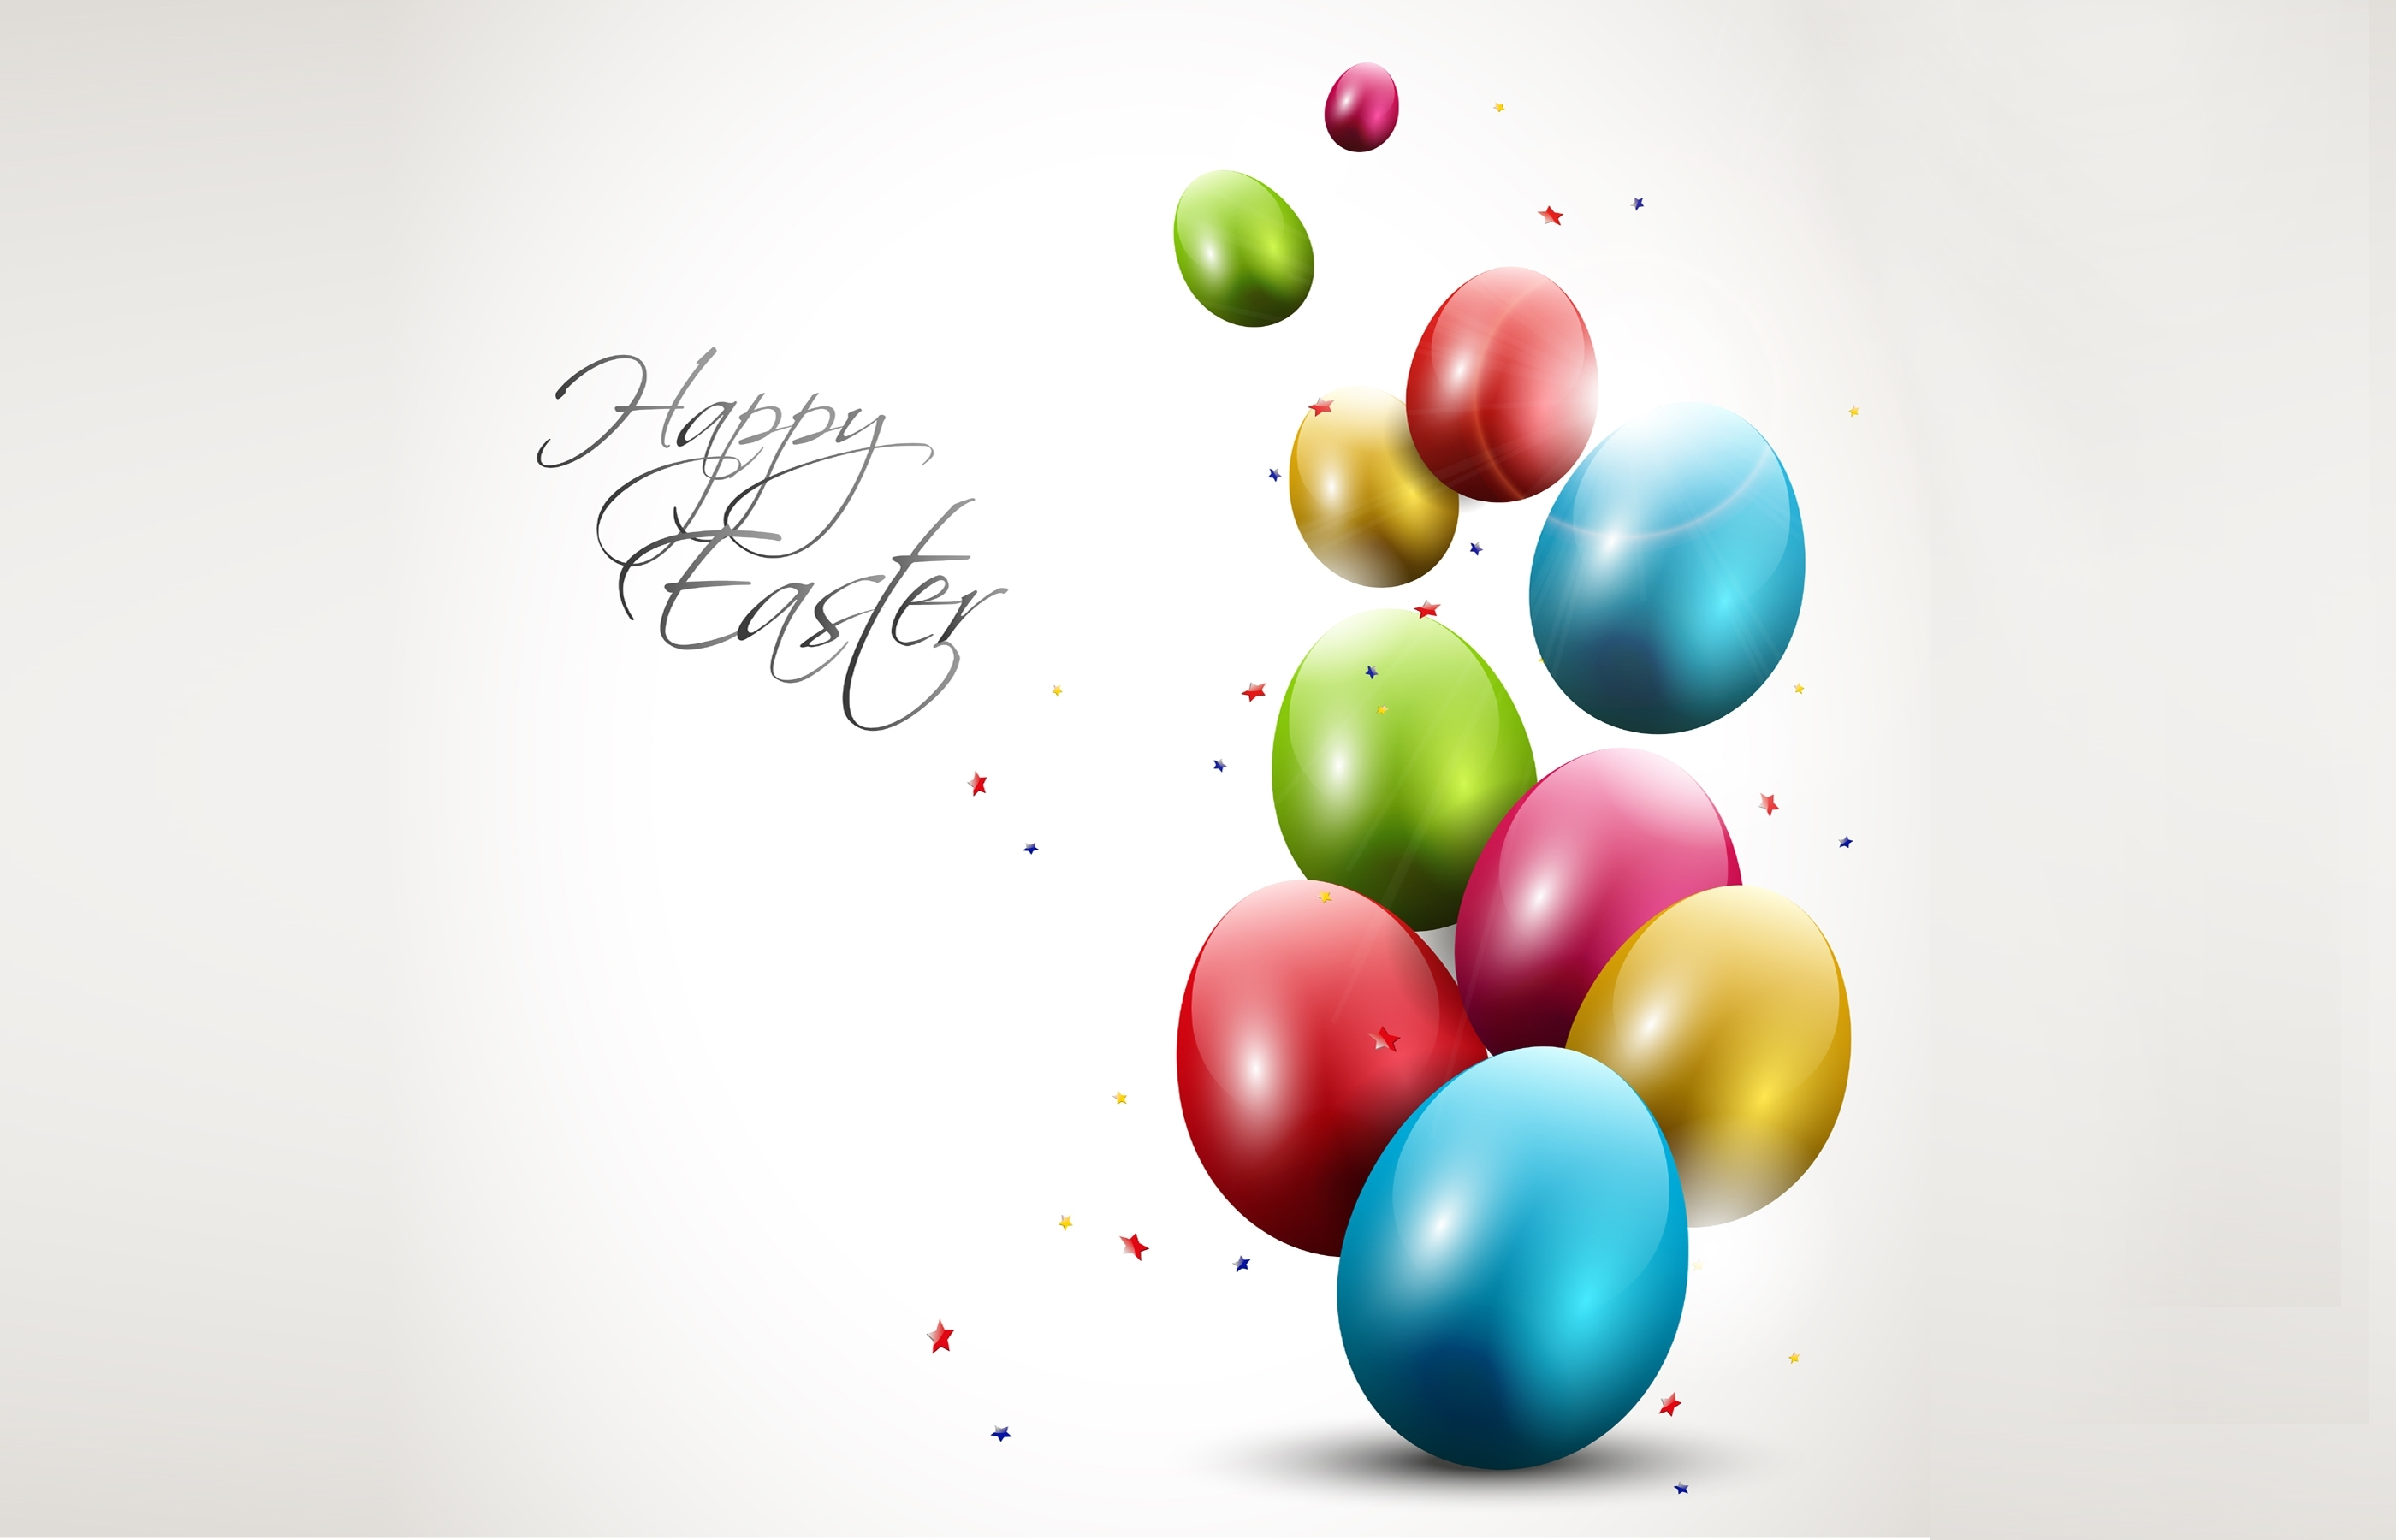 happy easter images for desktop | pixelstalk